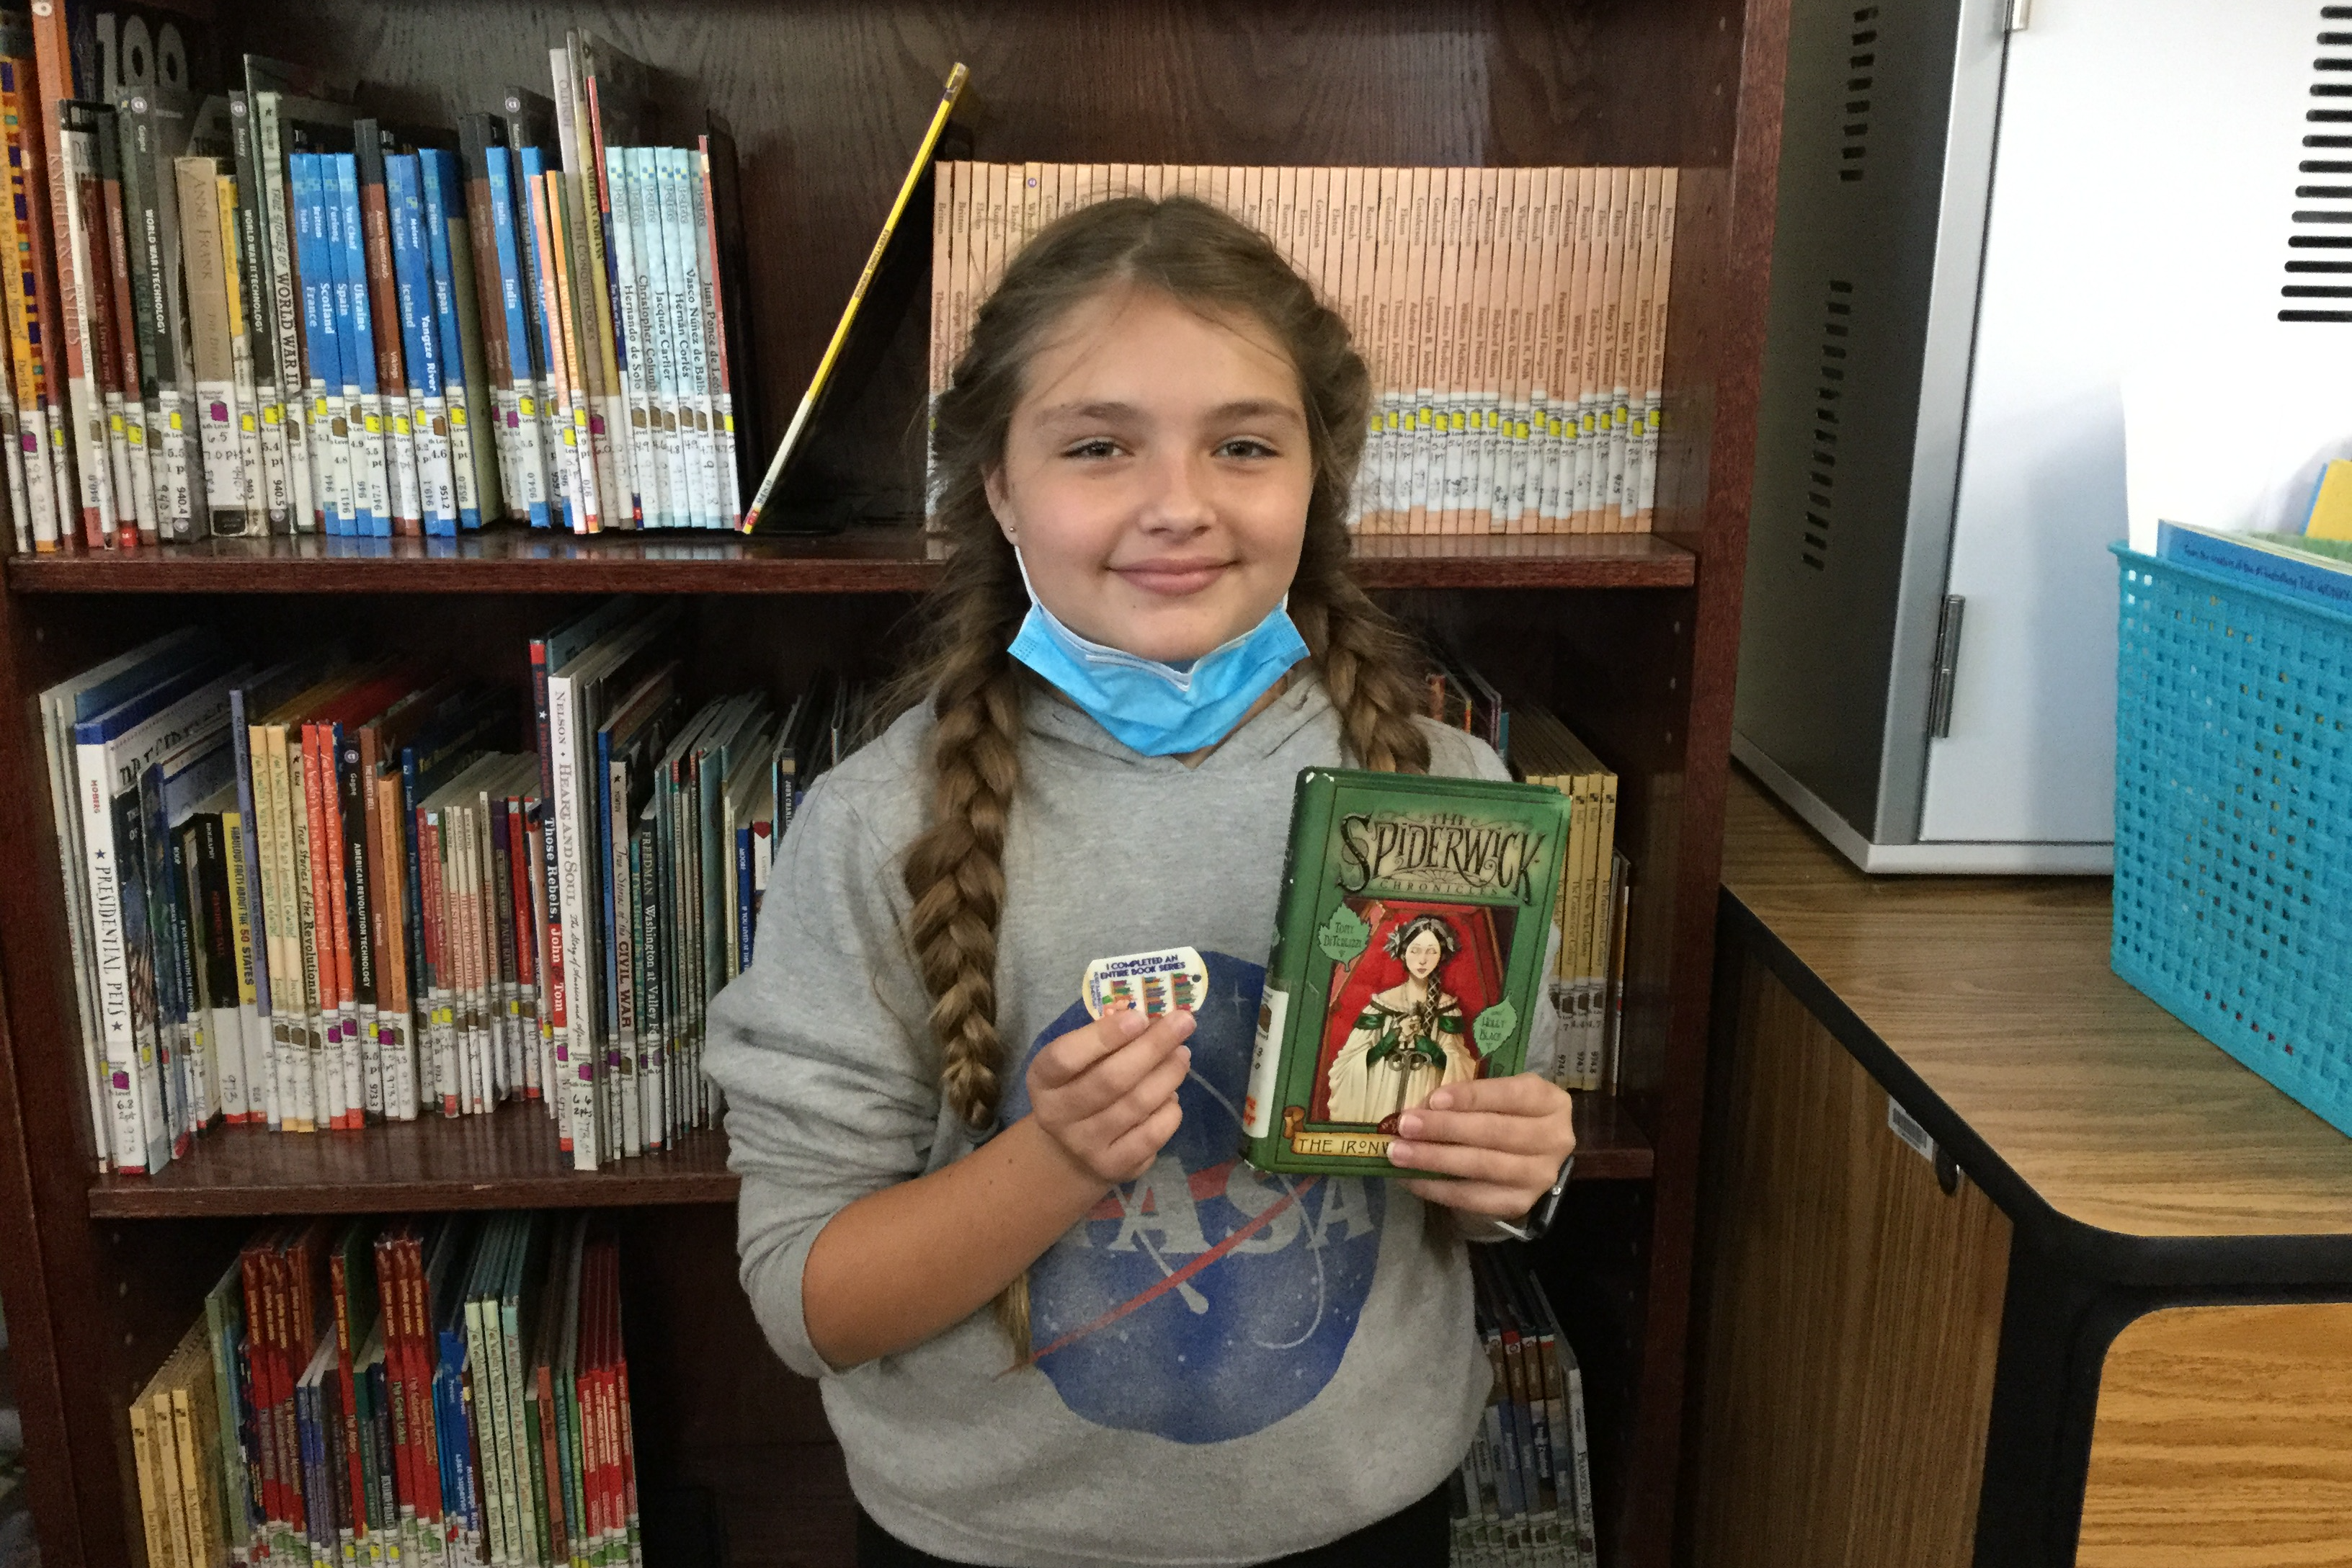 Student read a whole book series